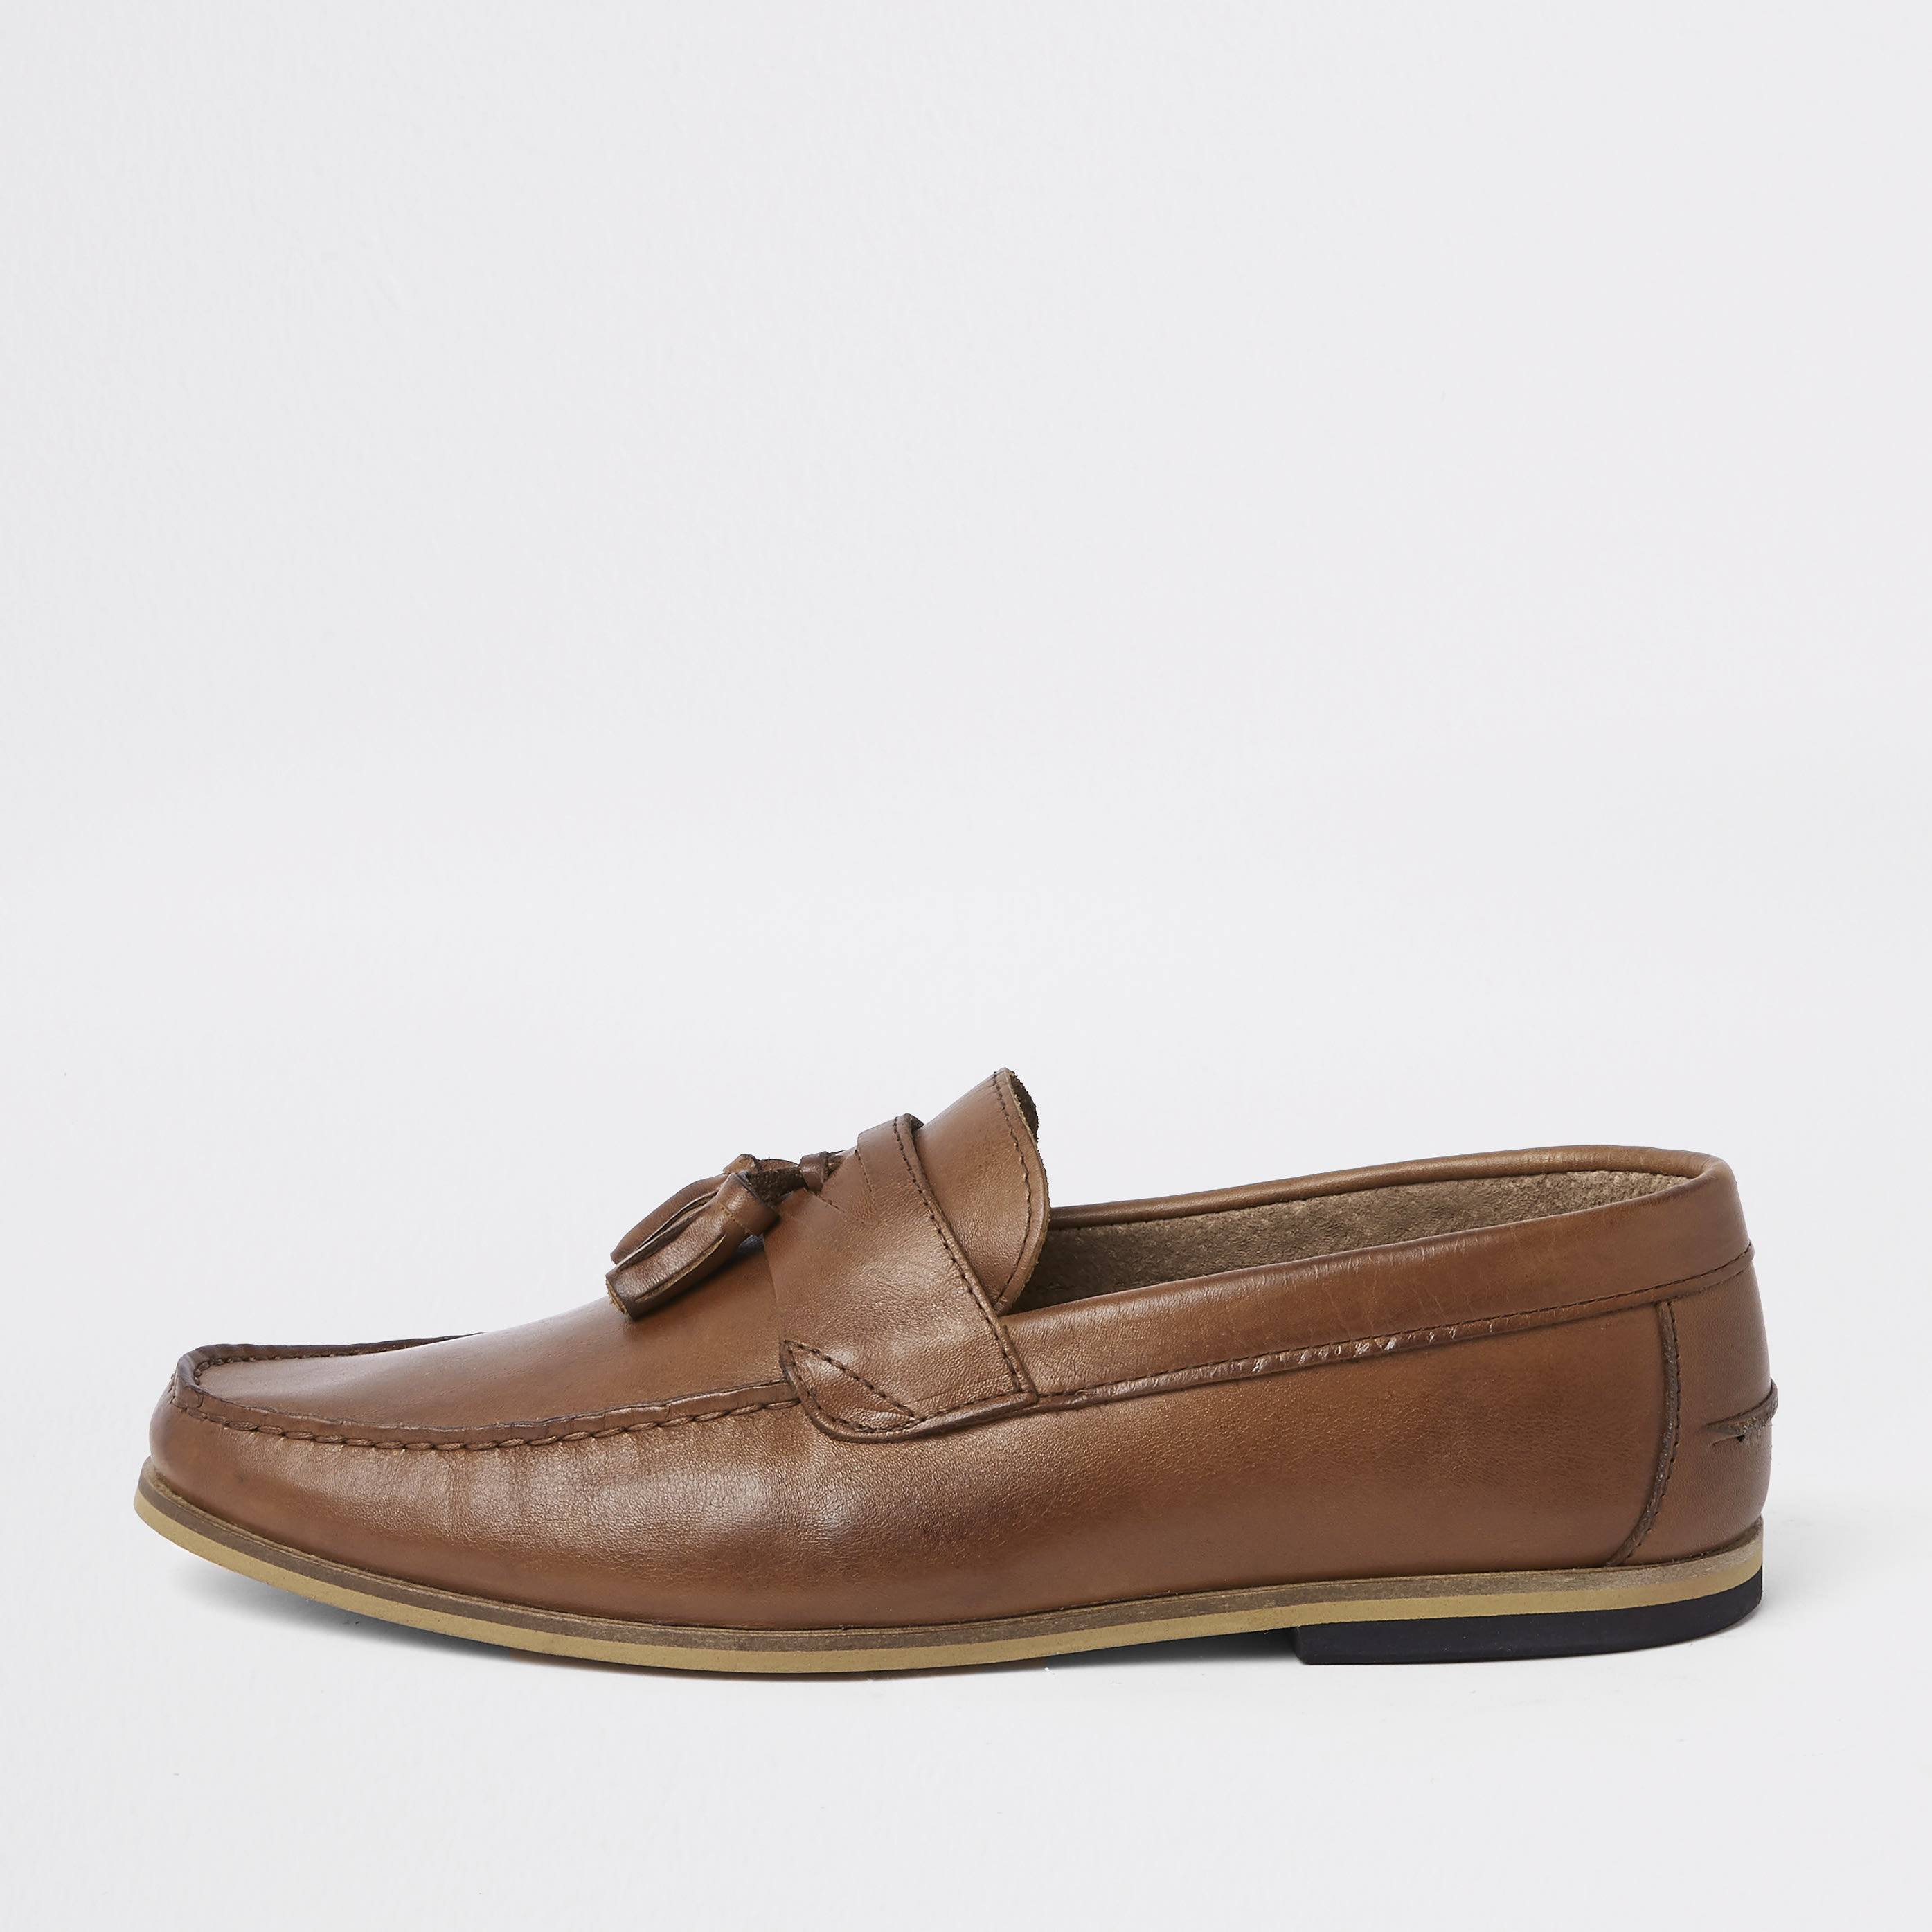 RIVER ISLAND | Mens Brown wide fit leather tassel loafers | Goxip